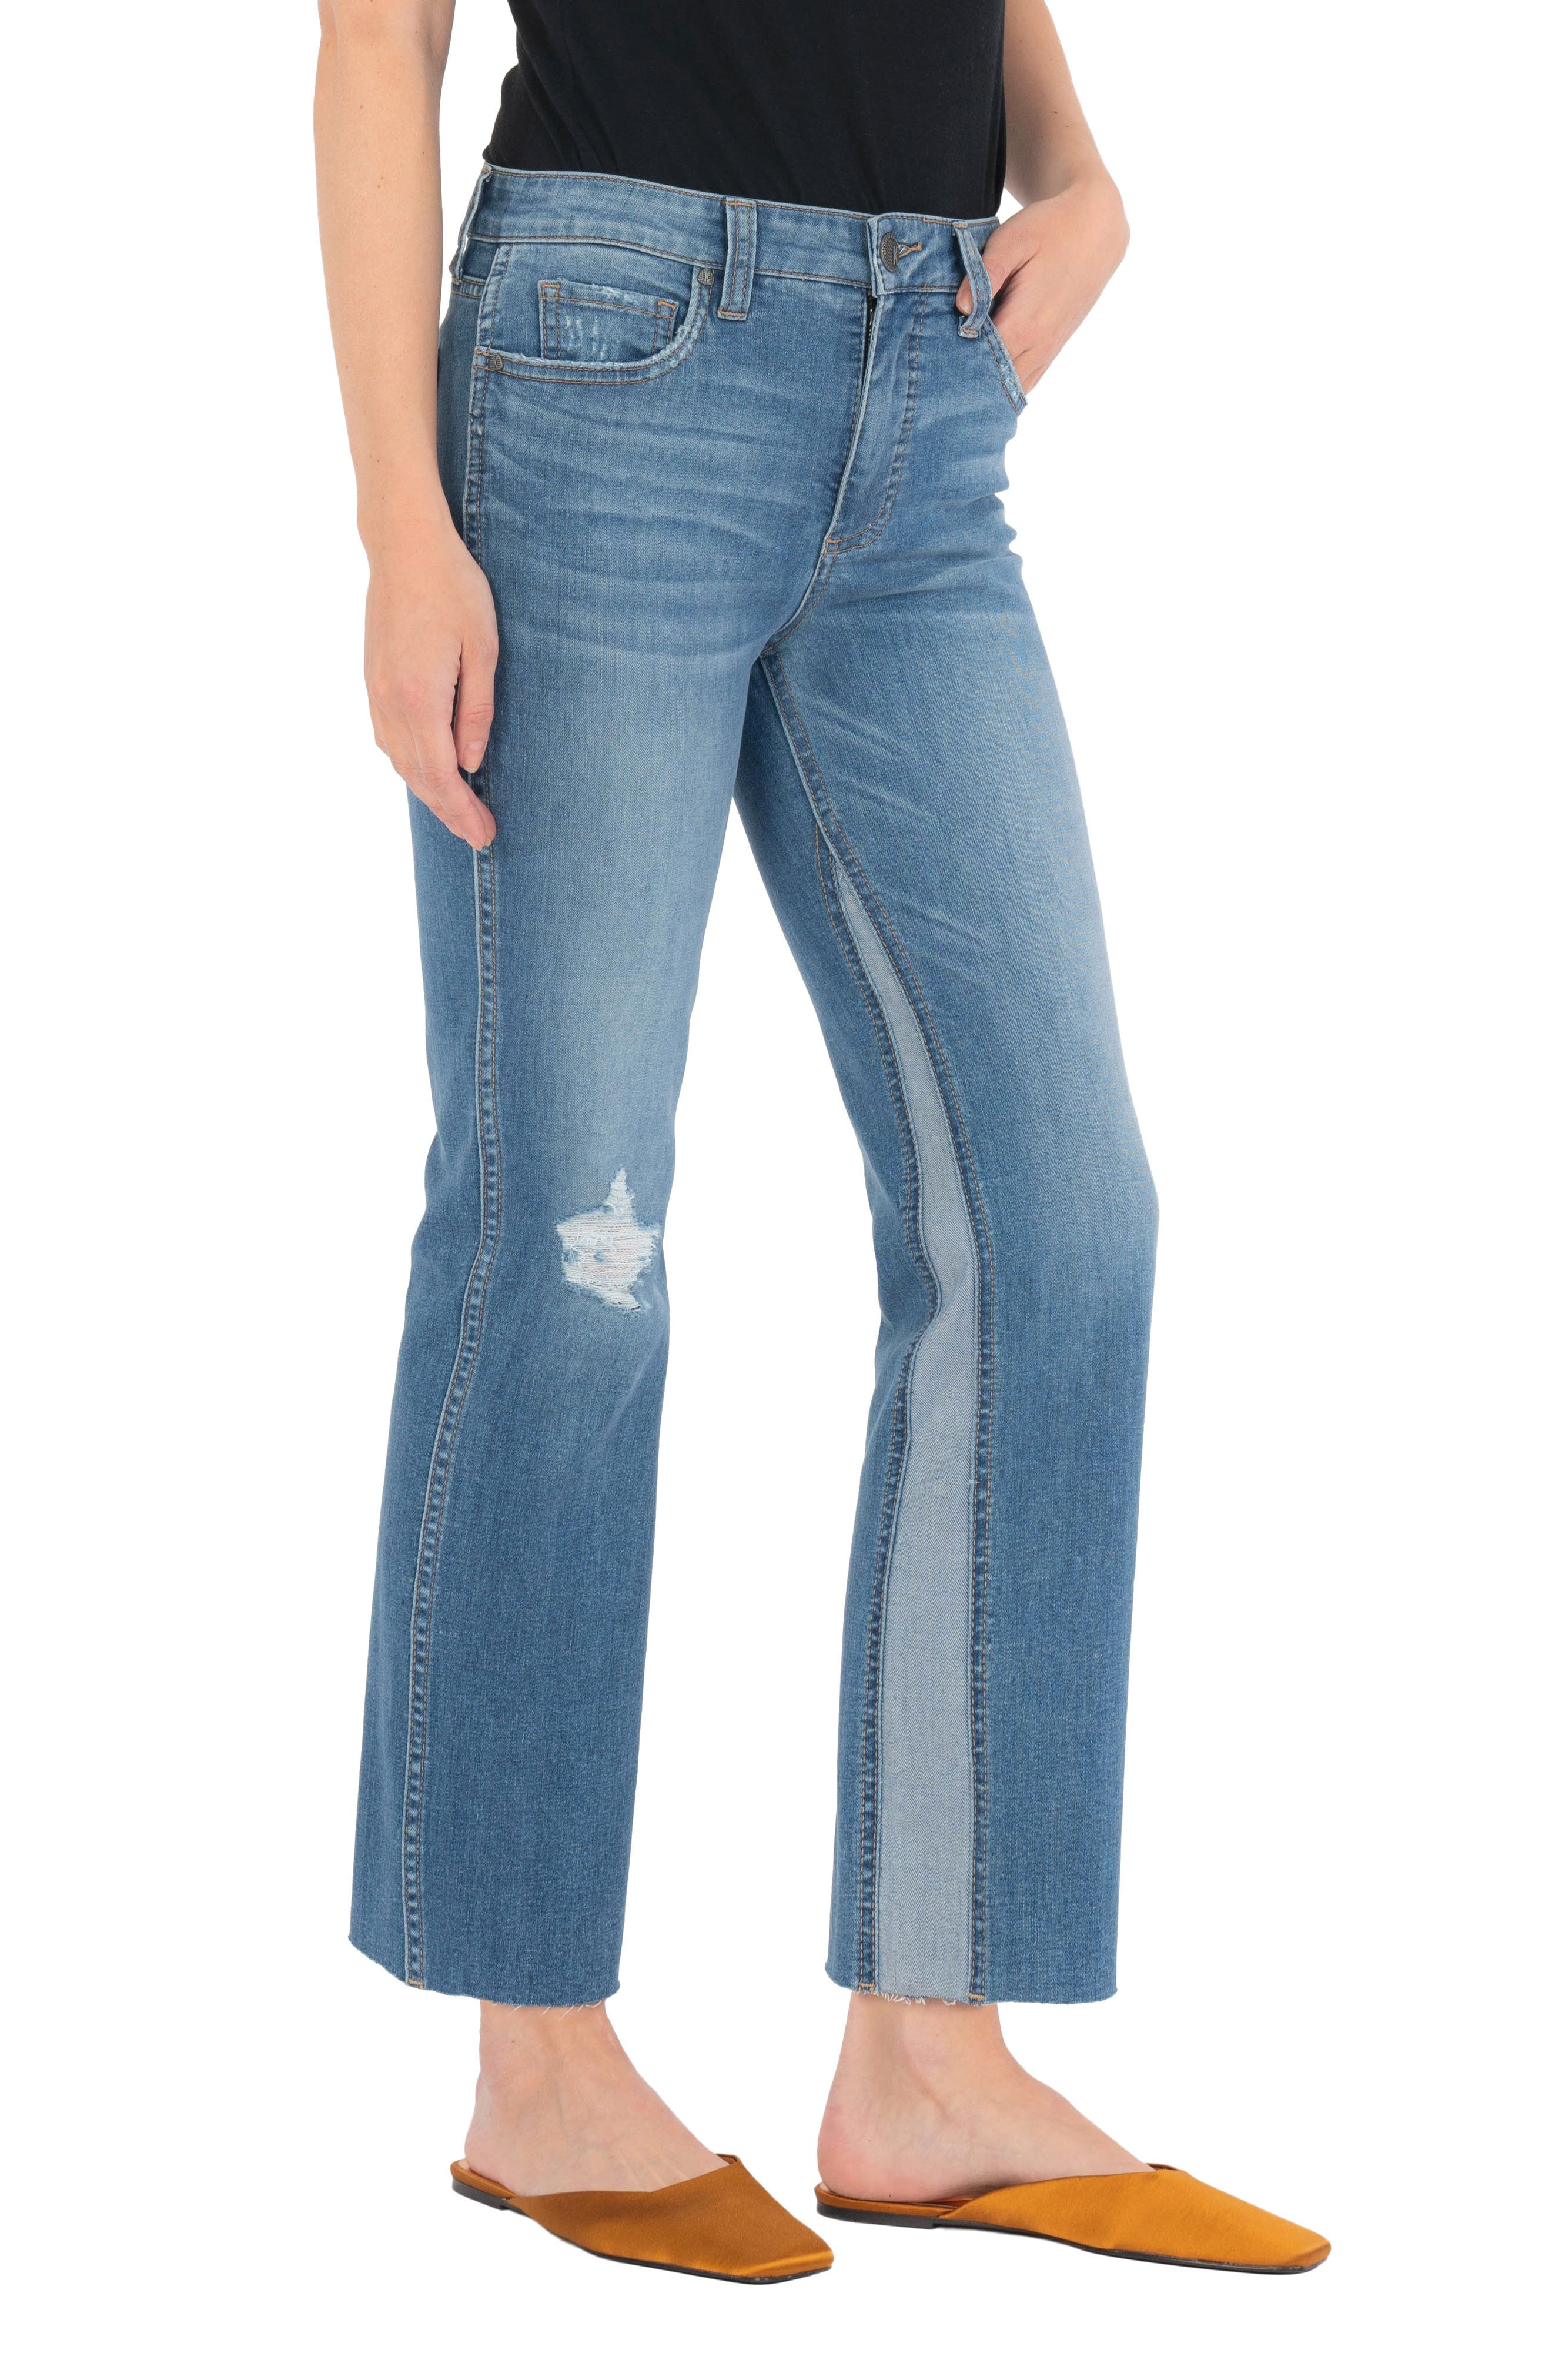 Kelsey Fab Ab Inset High Waist Ankle Flare Jeans